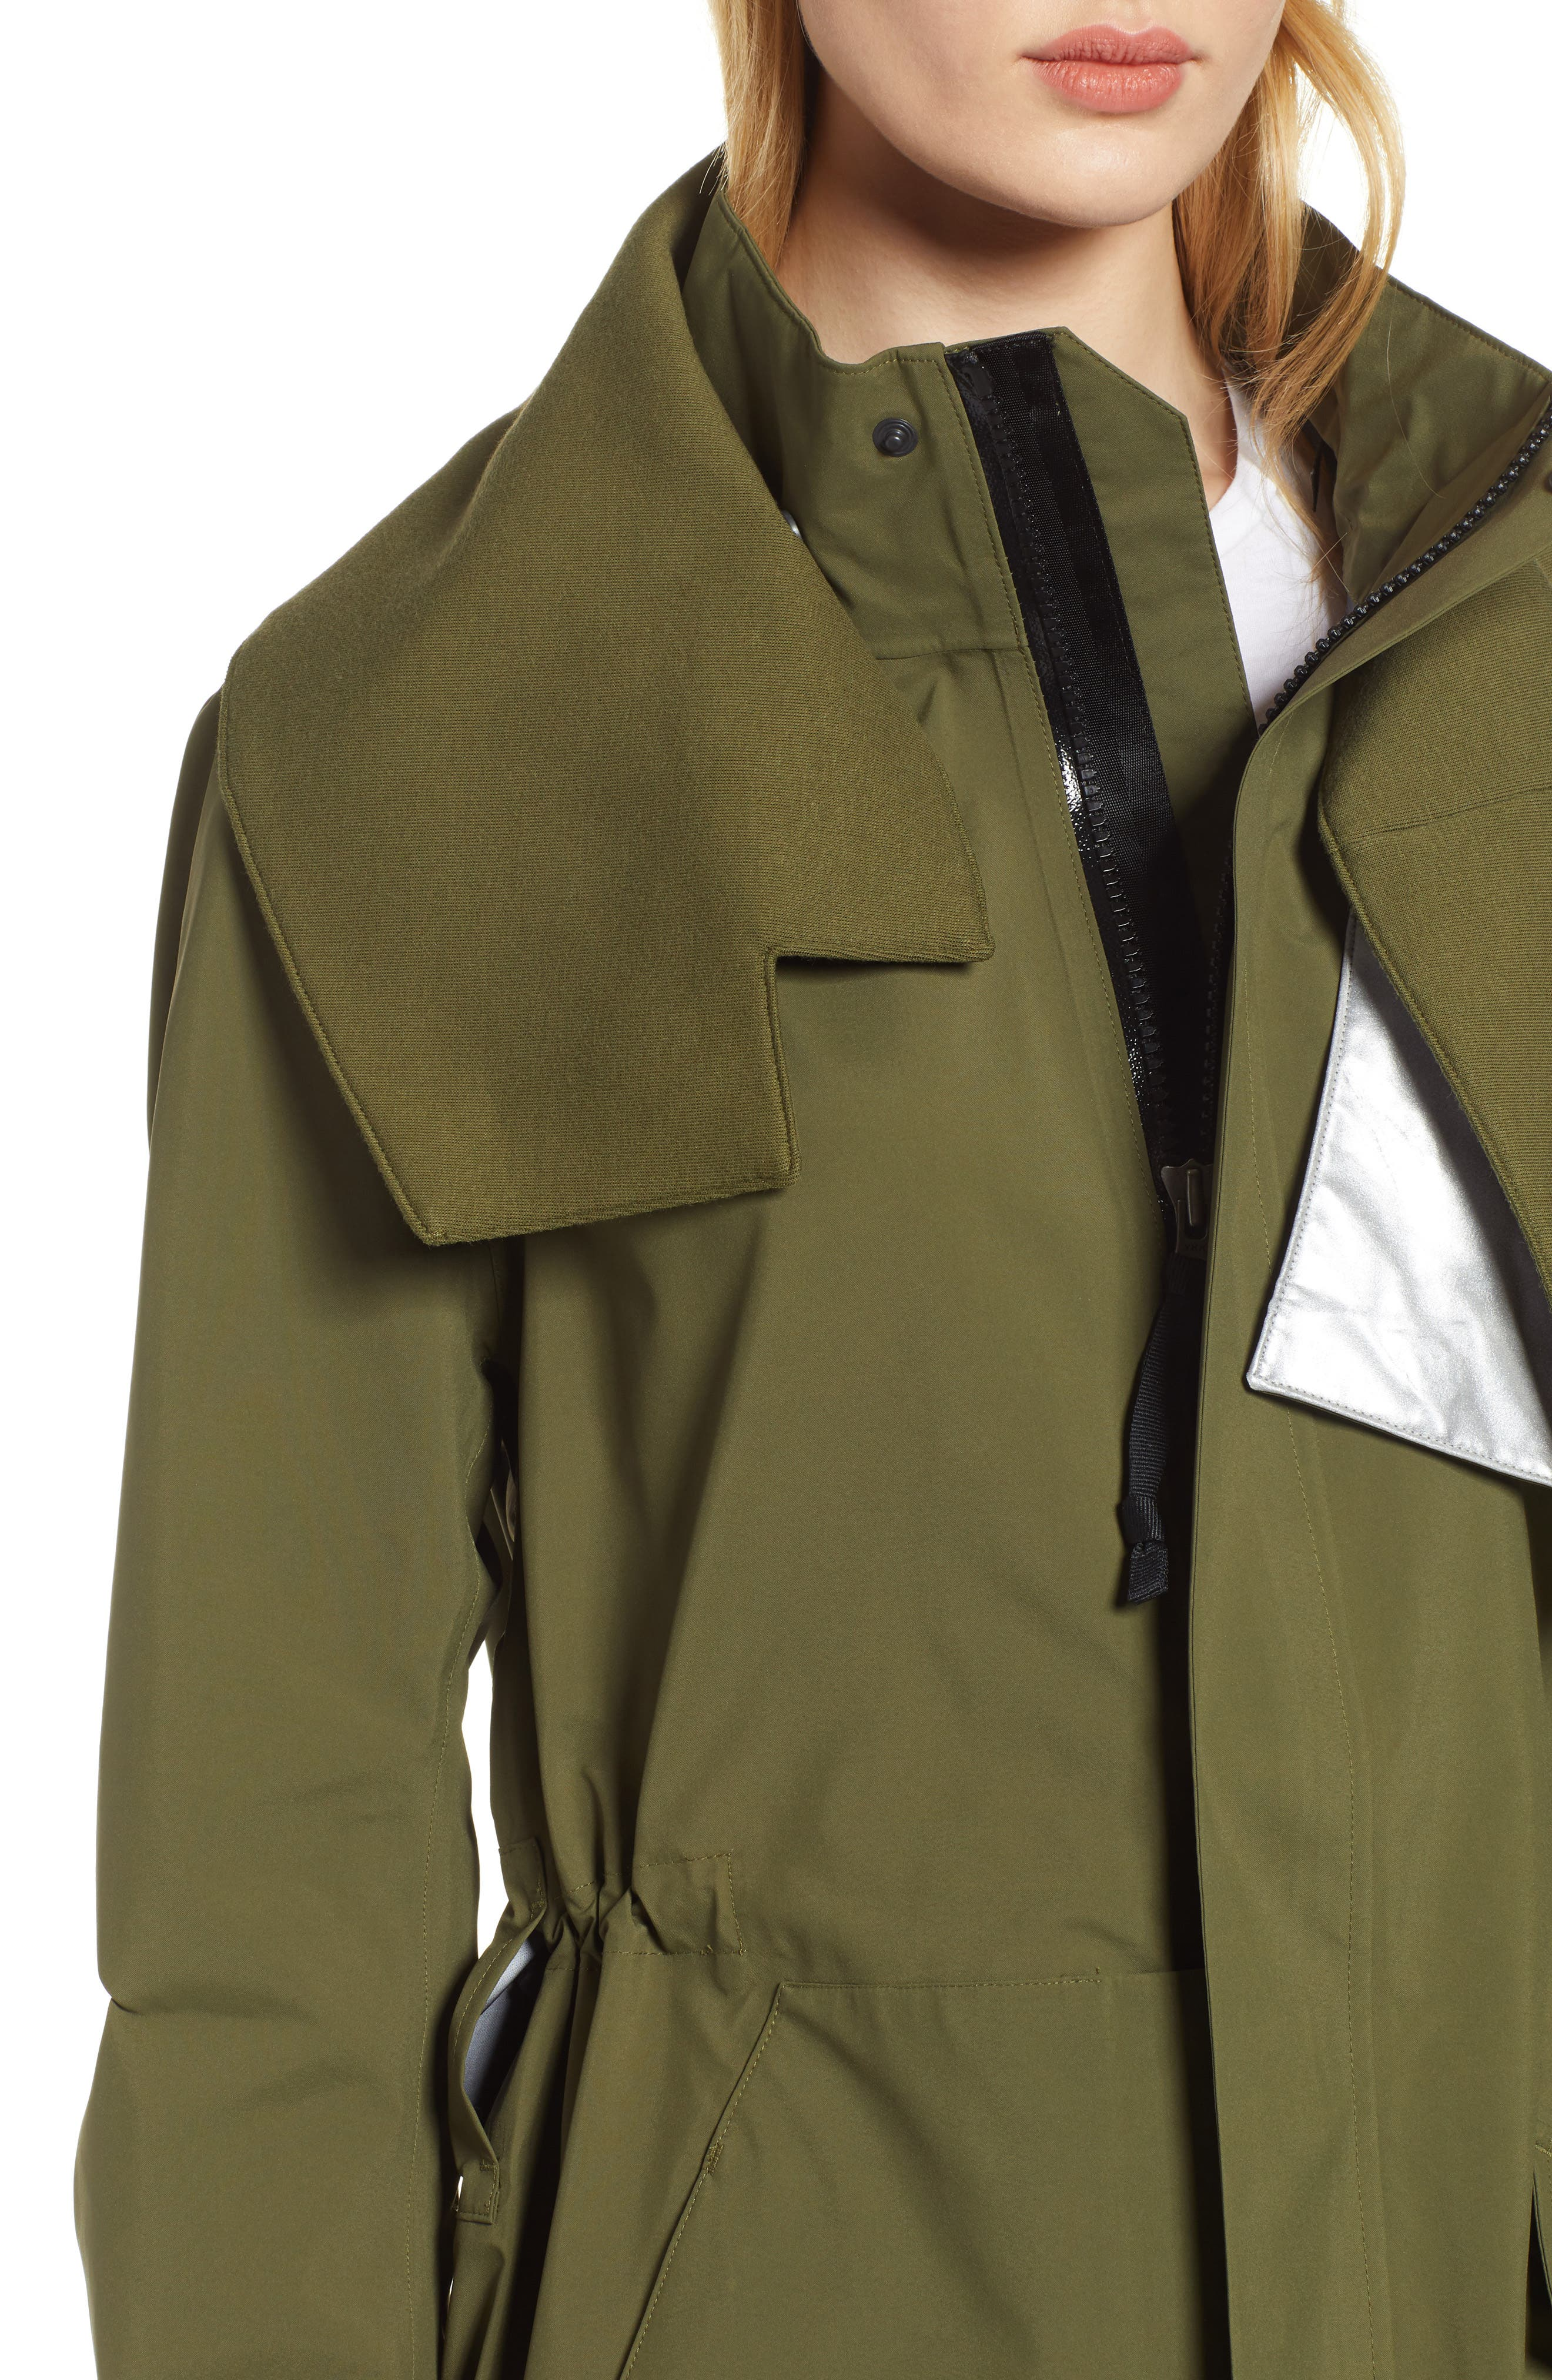 NIKE, NikeLab ACG GORE-TEX<sup>®</sup> Women's Jacket, Alternate thumbnail 6, color, OLIVE CANVAS